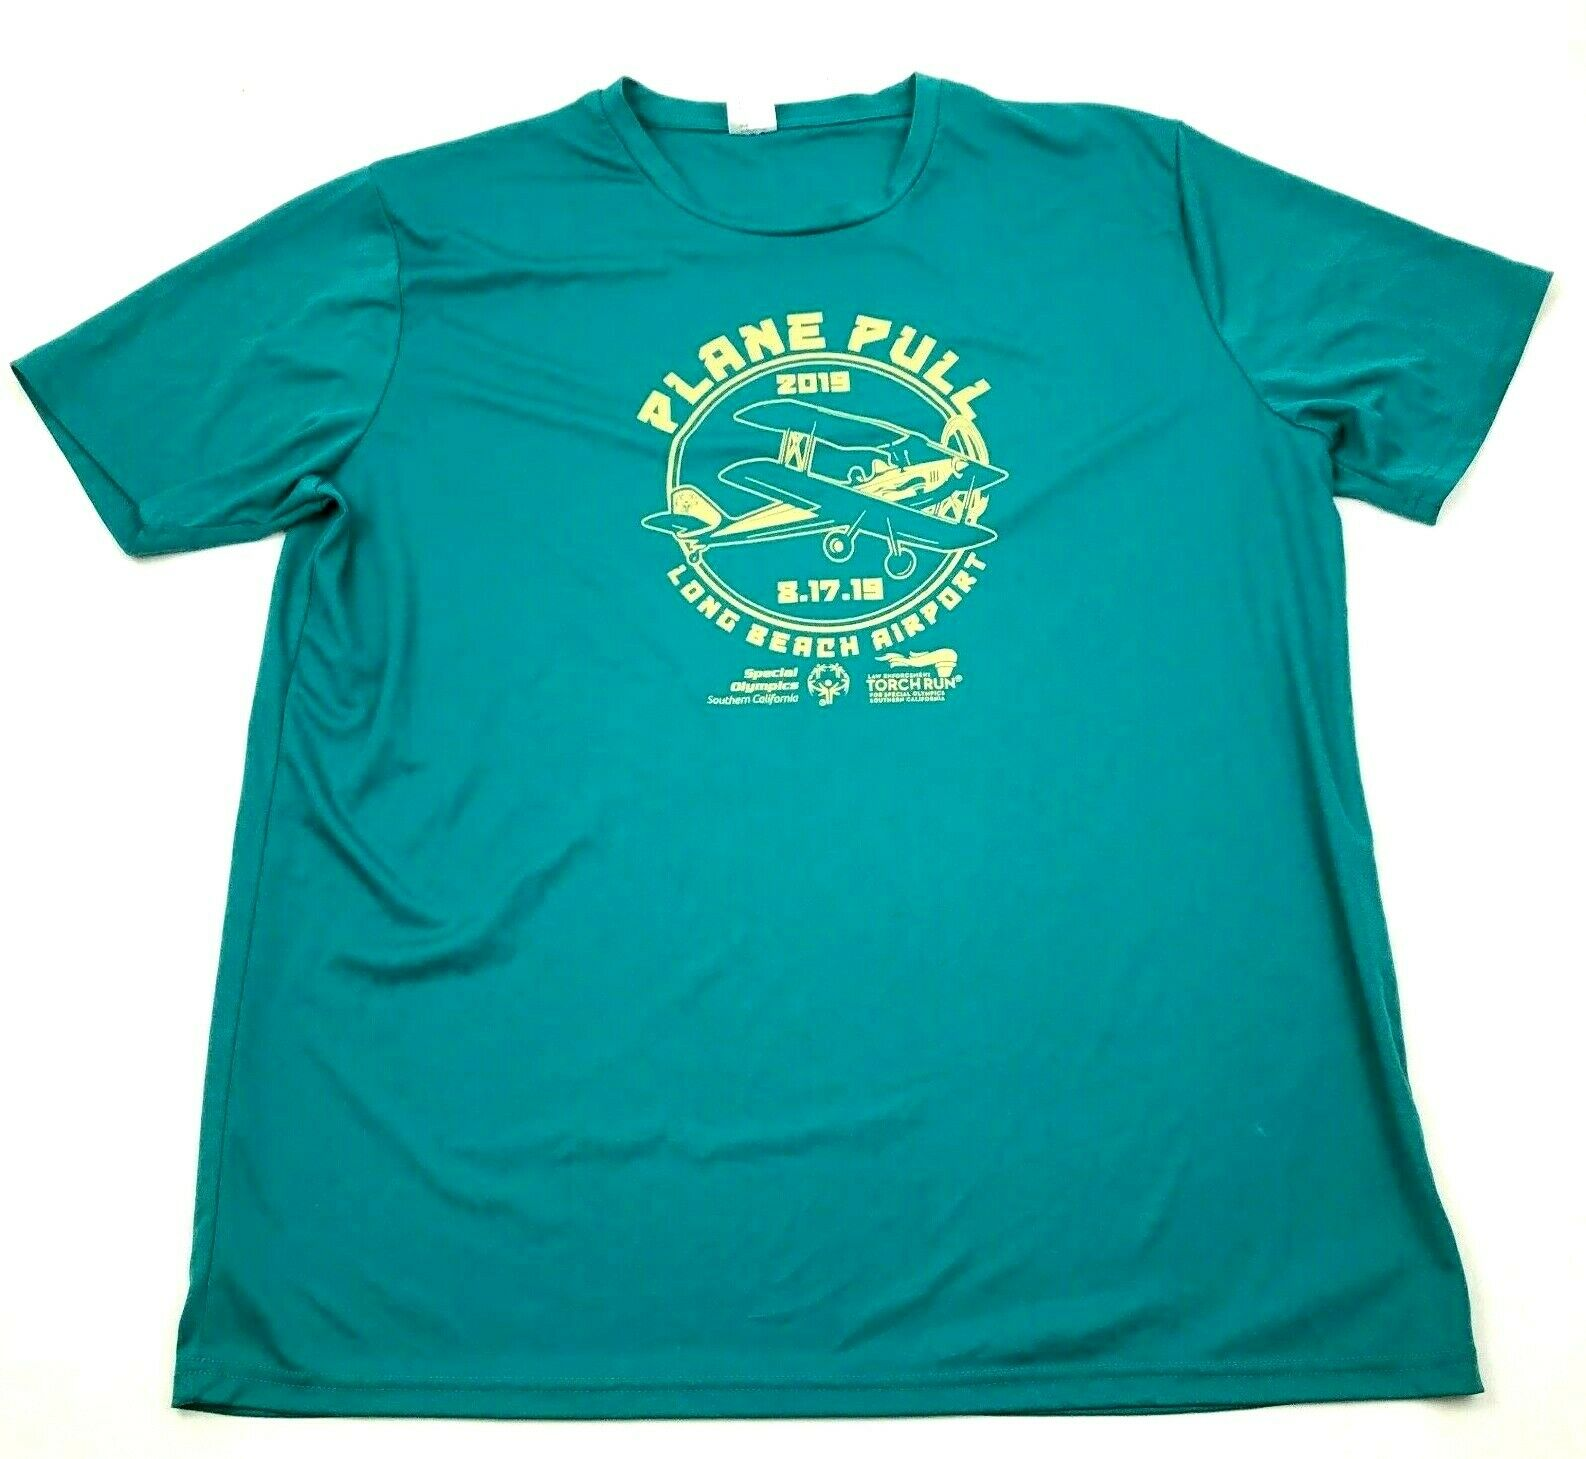 Special Olympics Plane Pull Shirt Size 2XL XXL Adult Dry Fit Tee Short Sleeve